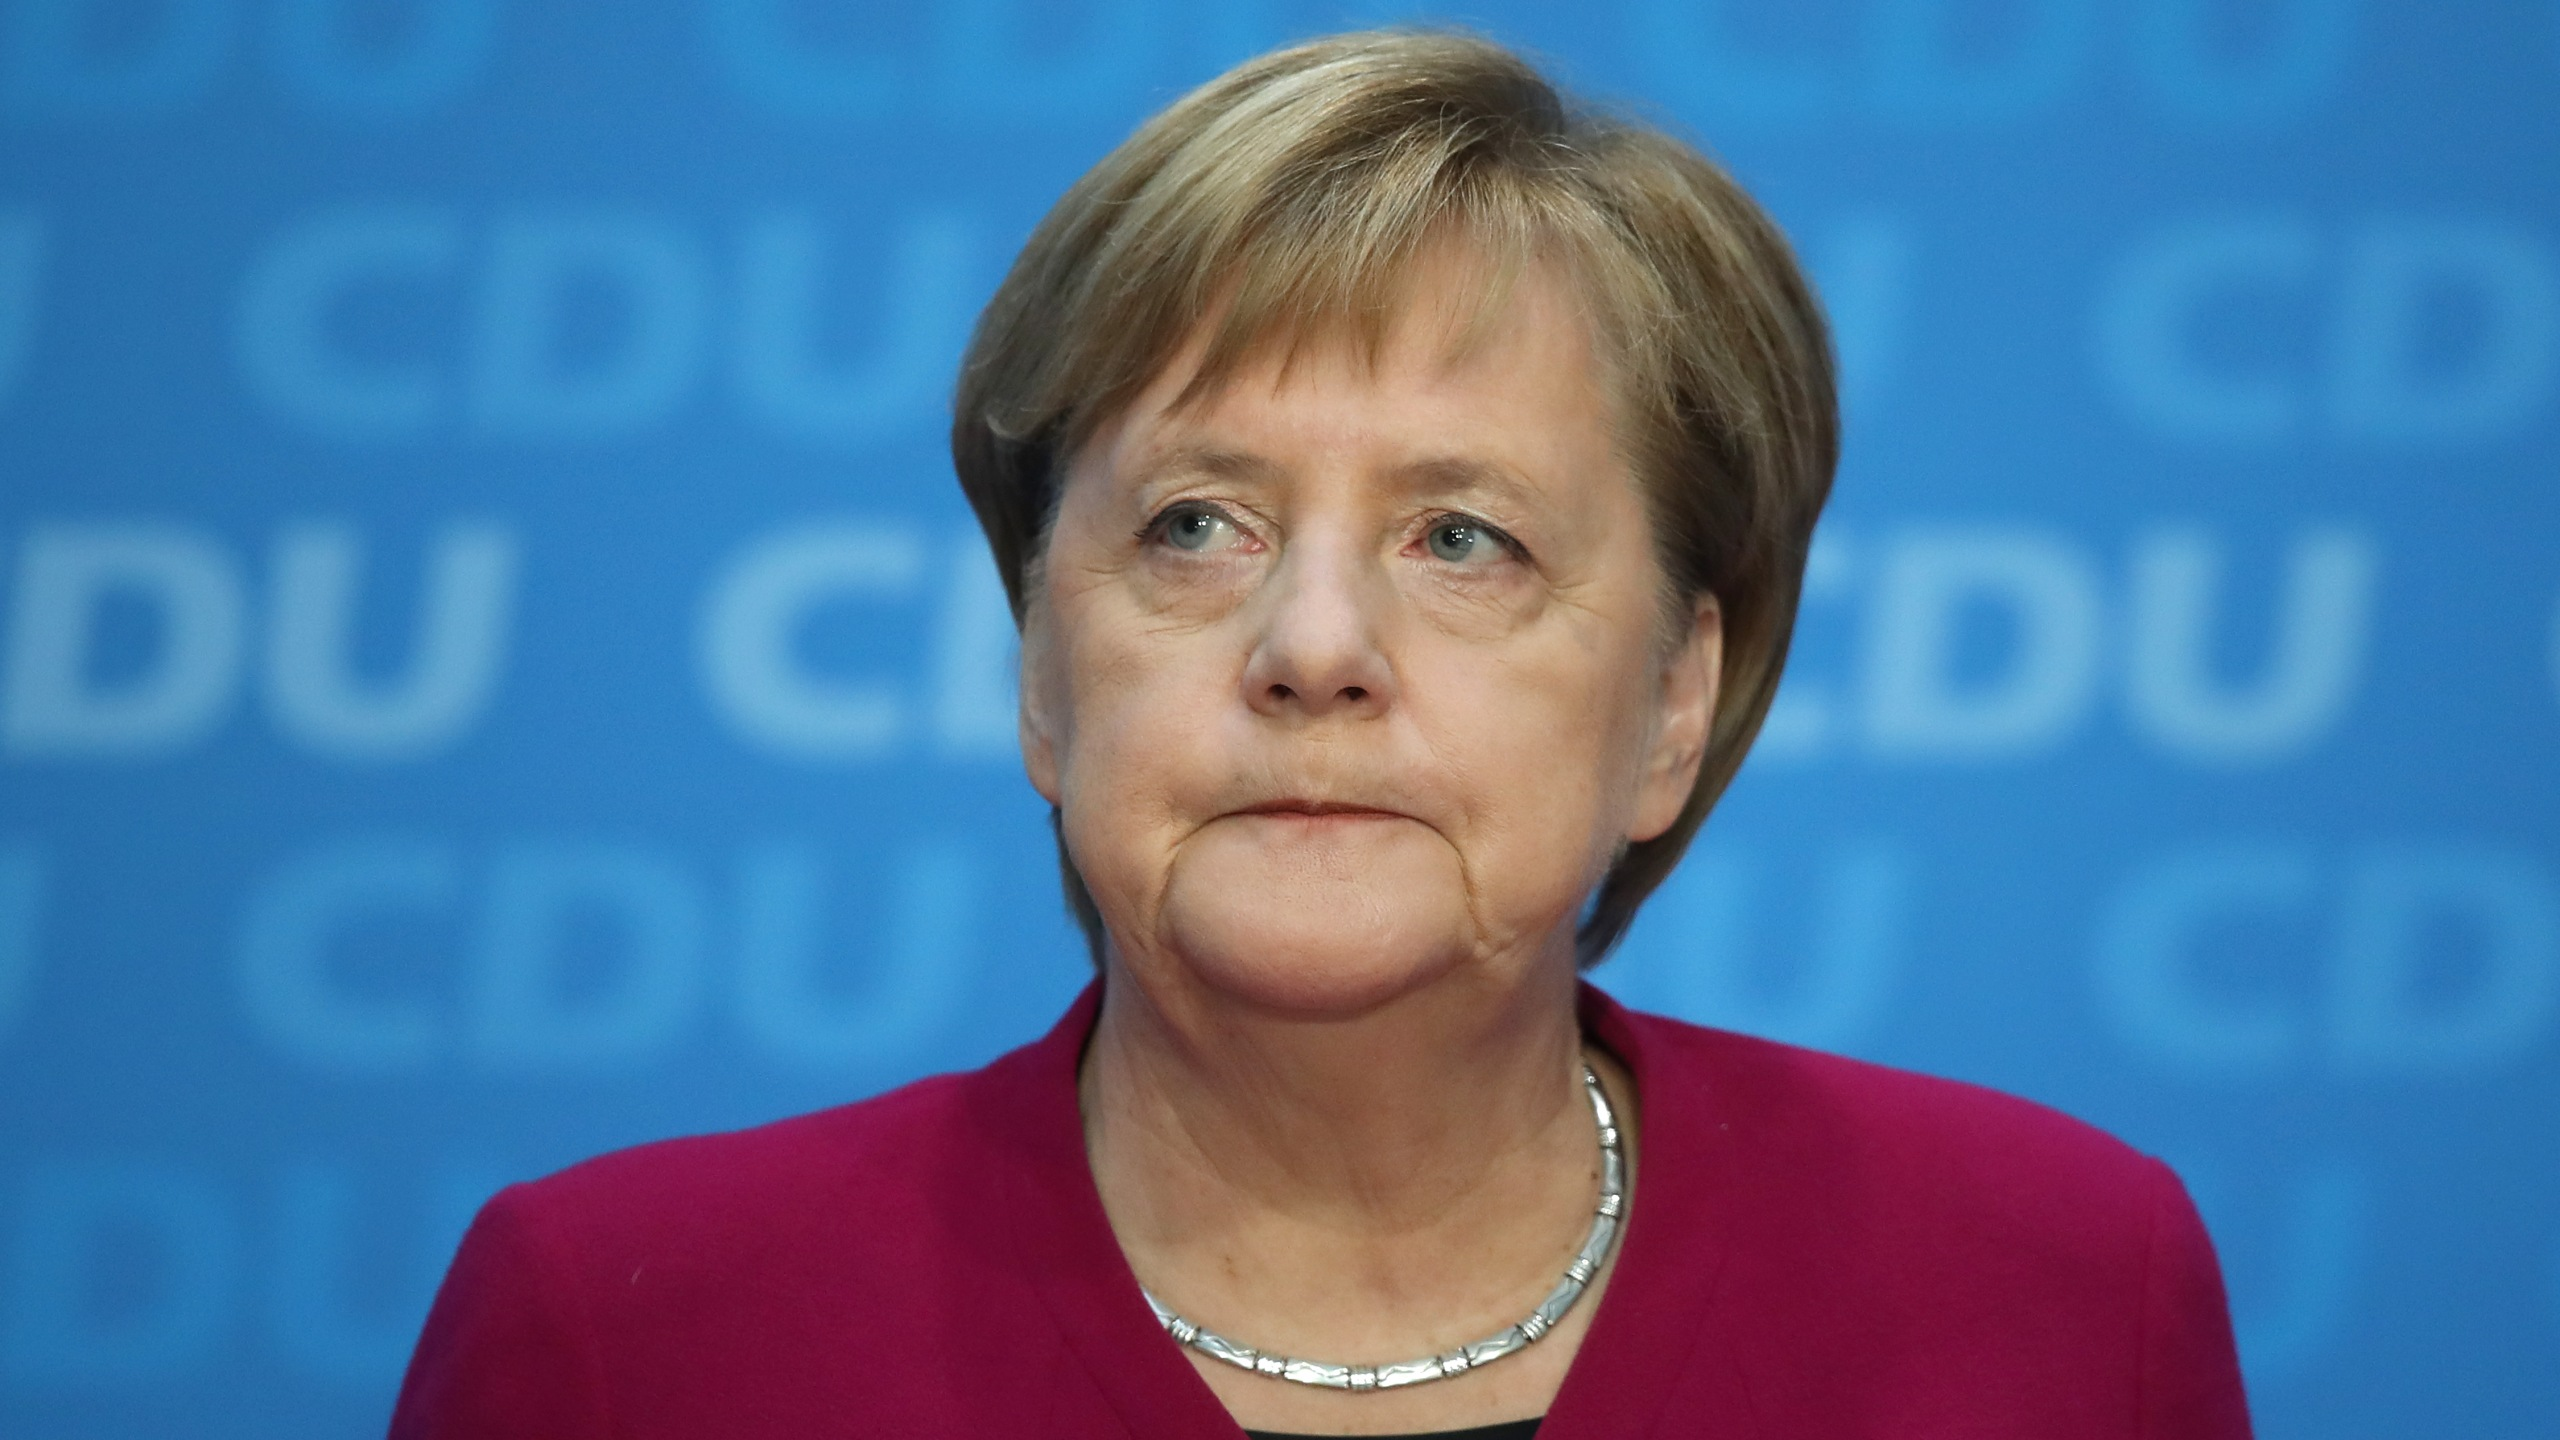 German Chancellor and leader of the German Christian Democrats (CDU) Angela Merkel speaks at a press conference the day after elections in the state of Hesse on Oct. 29, 2018 in Berlin. Merkel announced that she will not seek re-election neither as party chairwoman nor as chancellor. (Credit: Sean Gallup/Getty Images)